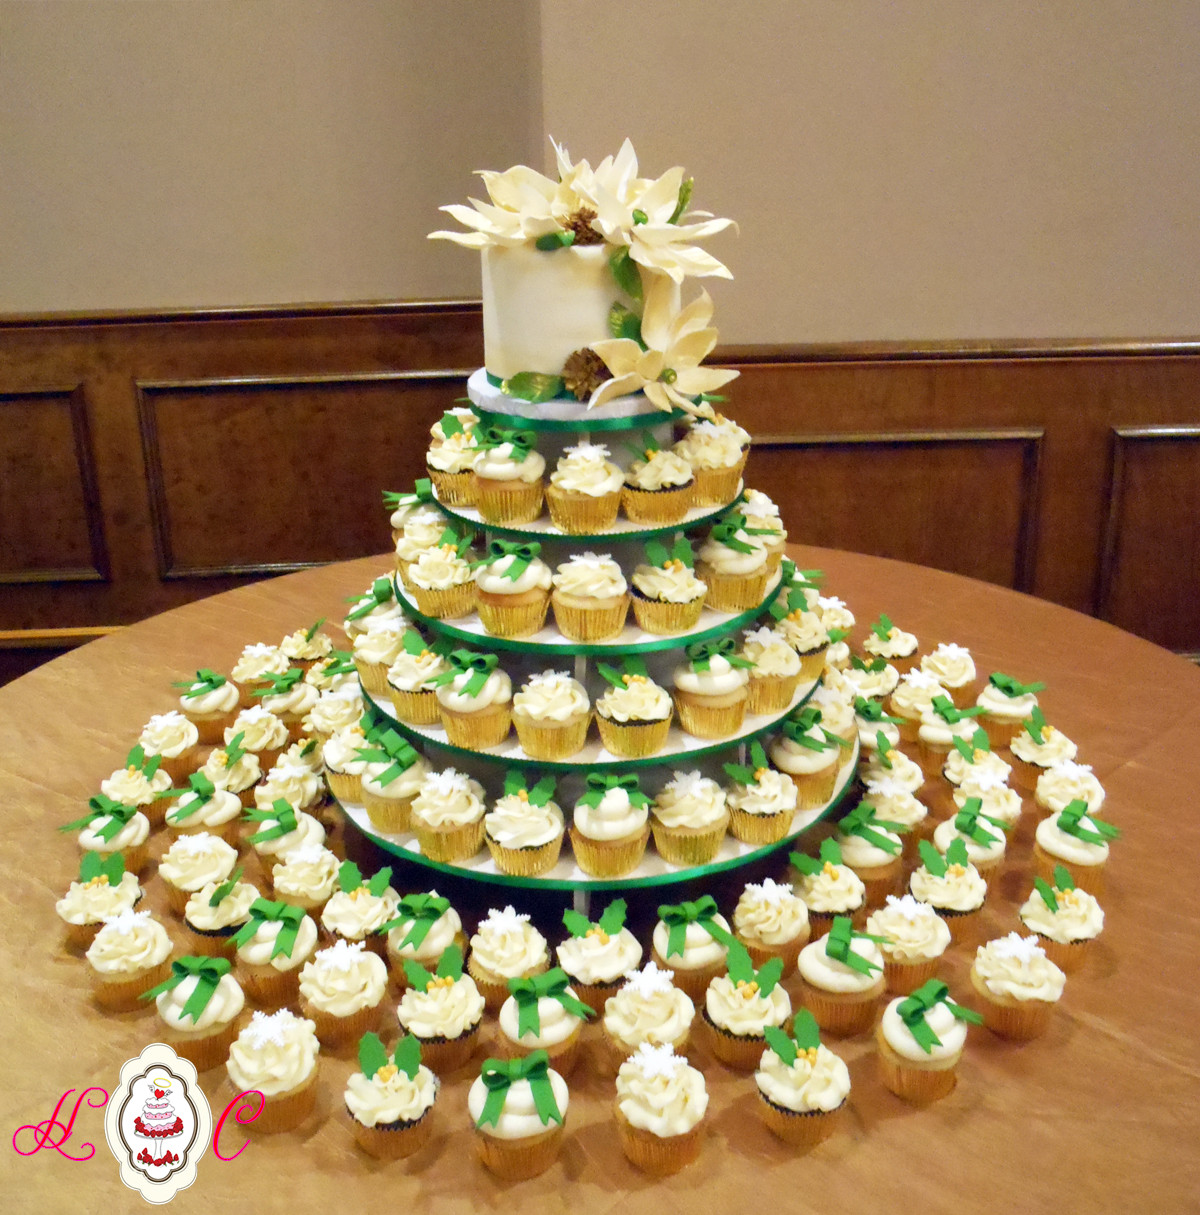 Christmas Cake And Cupcakes  Wedding Cakes in Marietta Parkersburg & More Heavenly